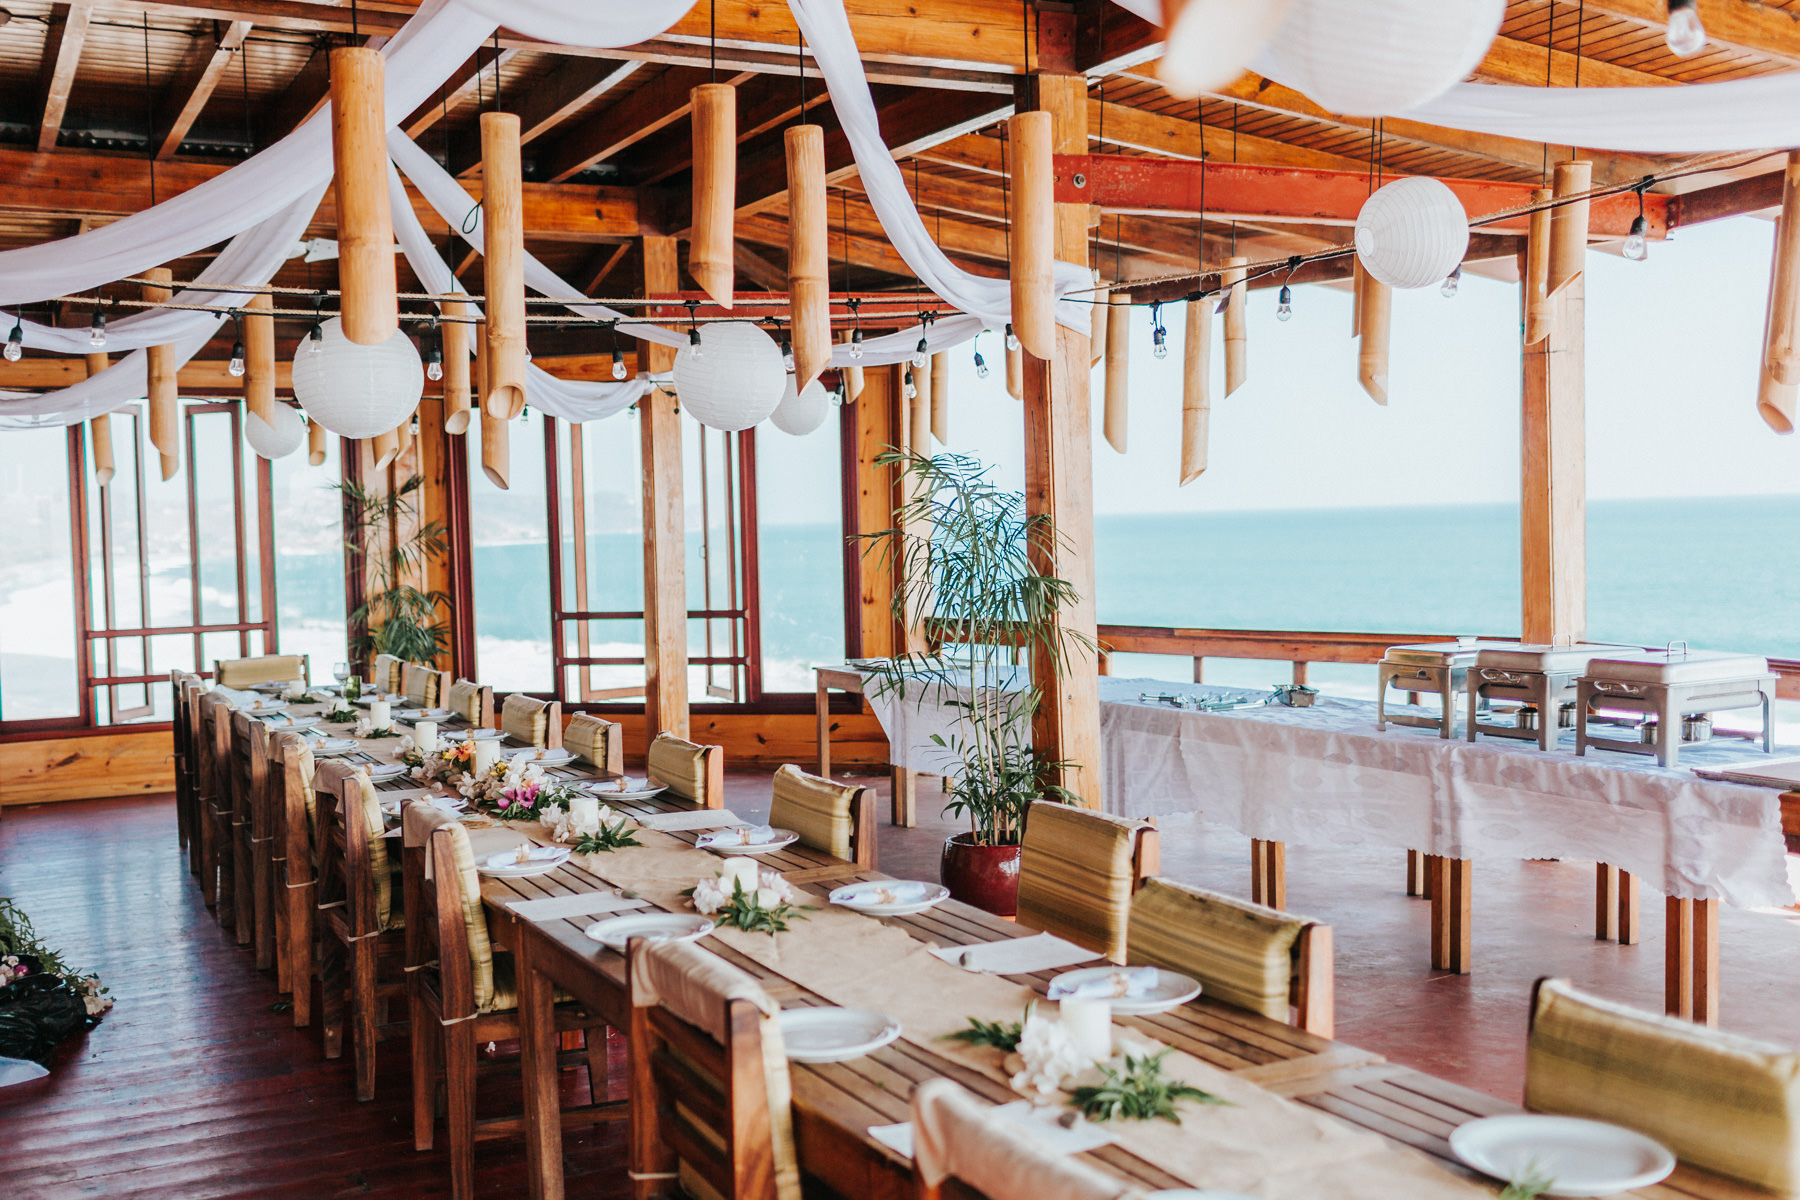 Costa Rica Beach wedding decor ideas - ocean